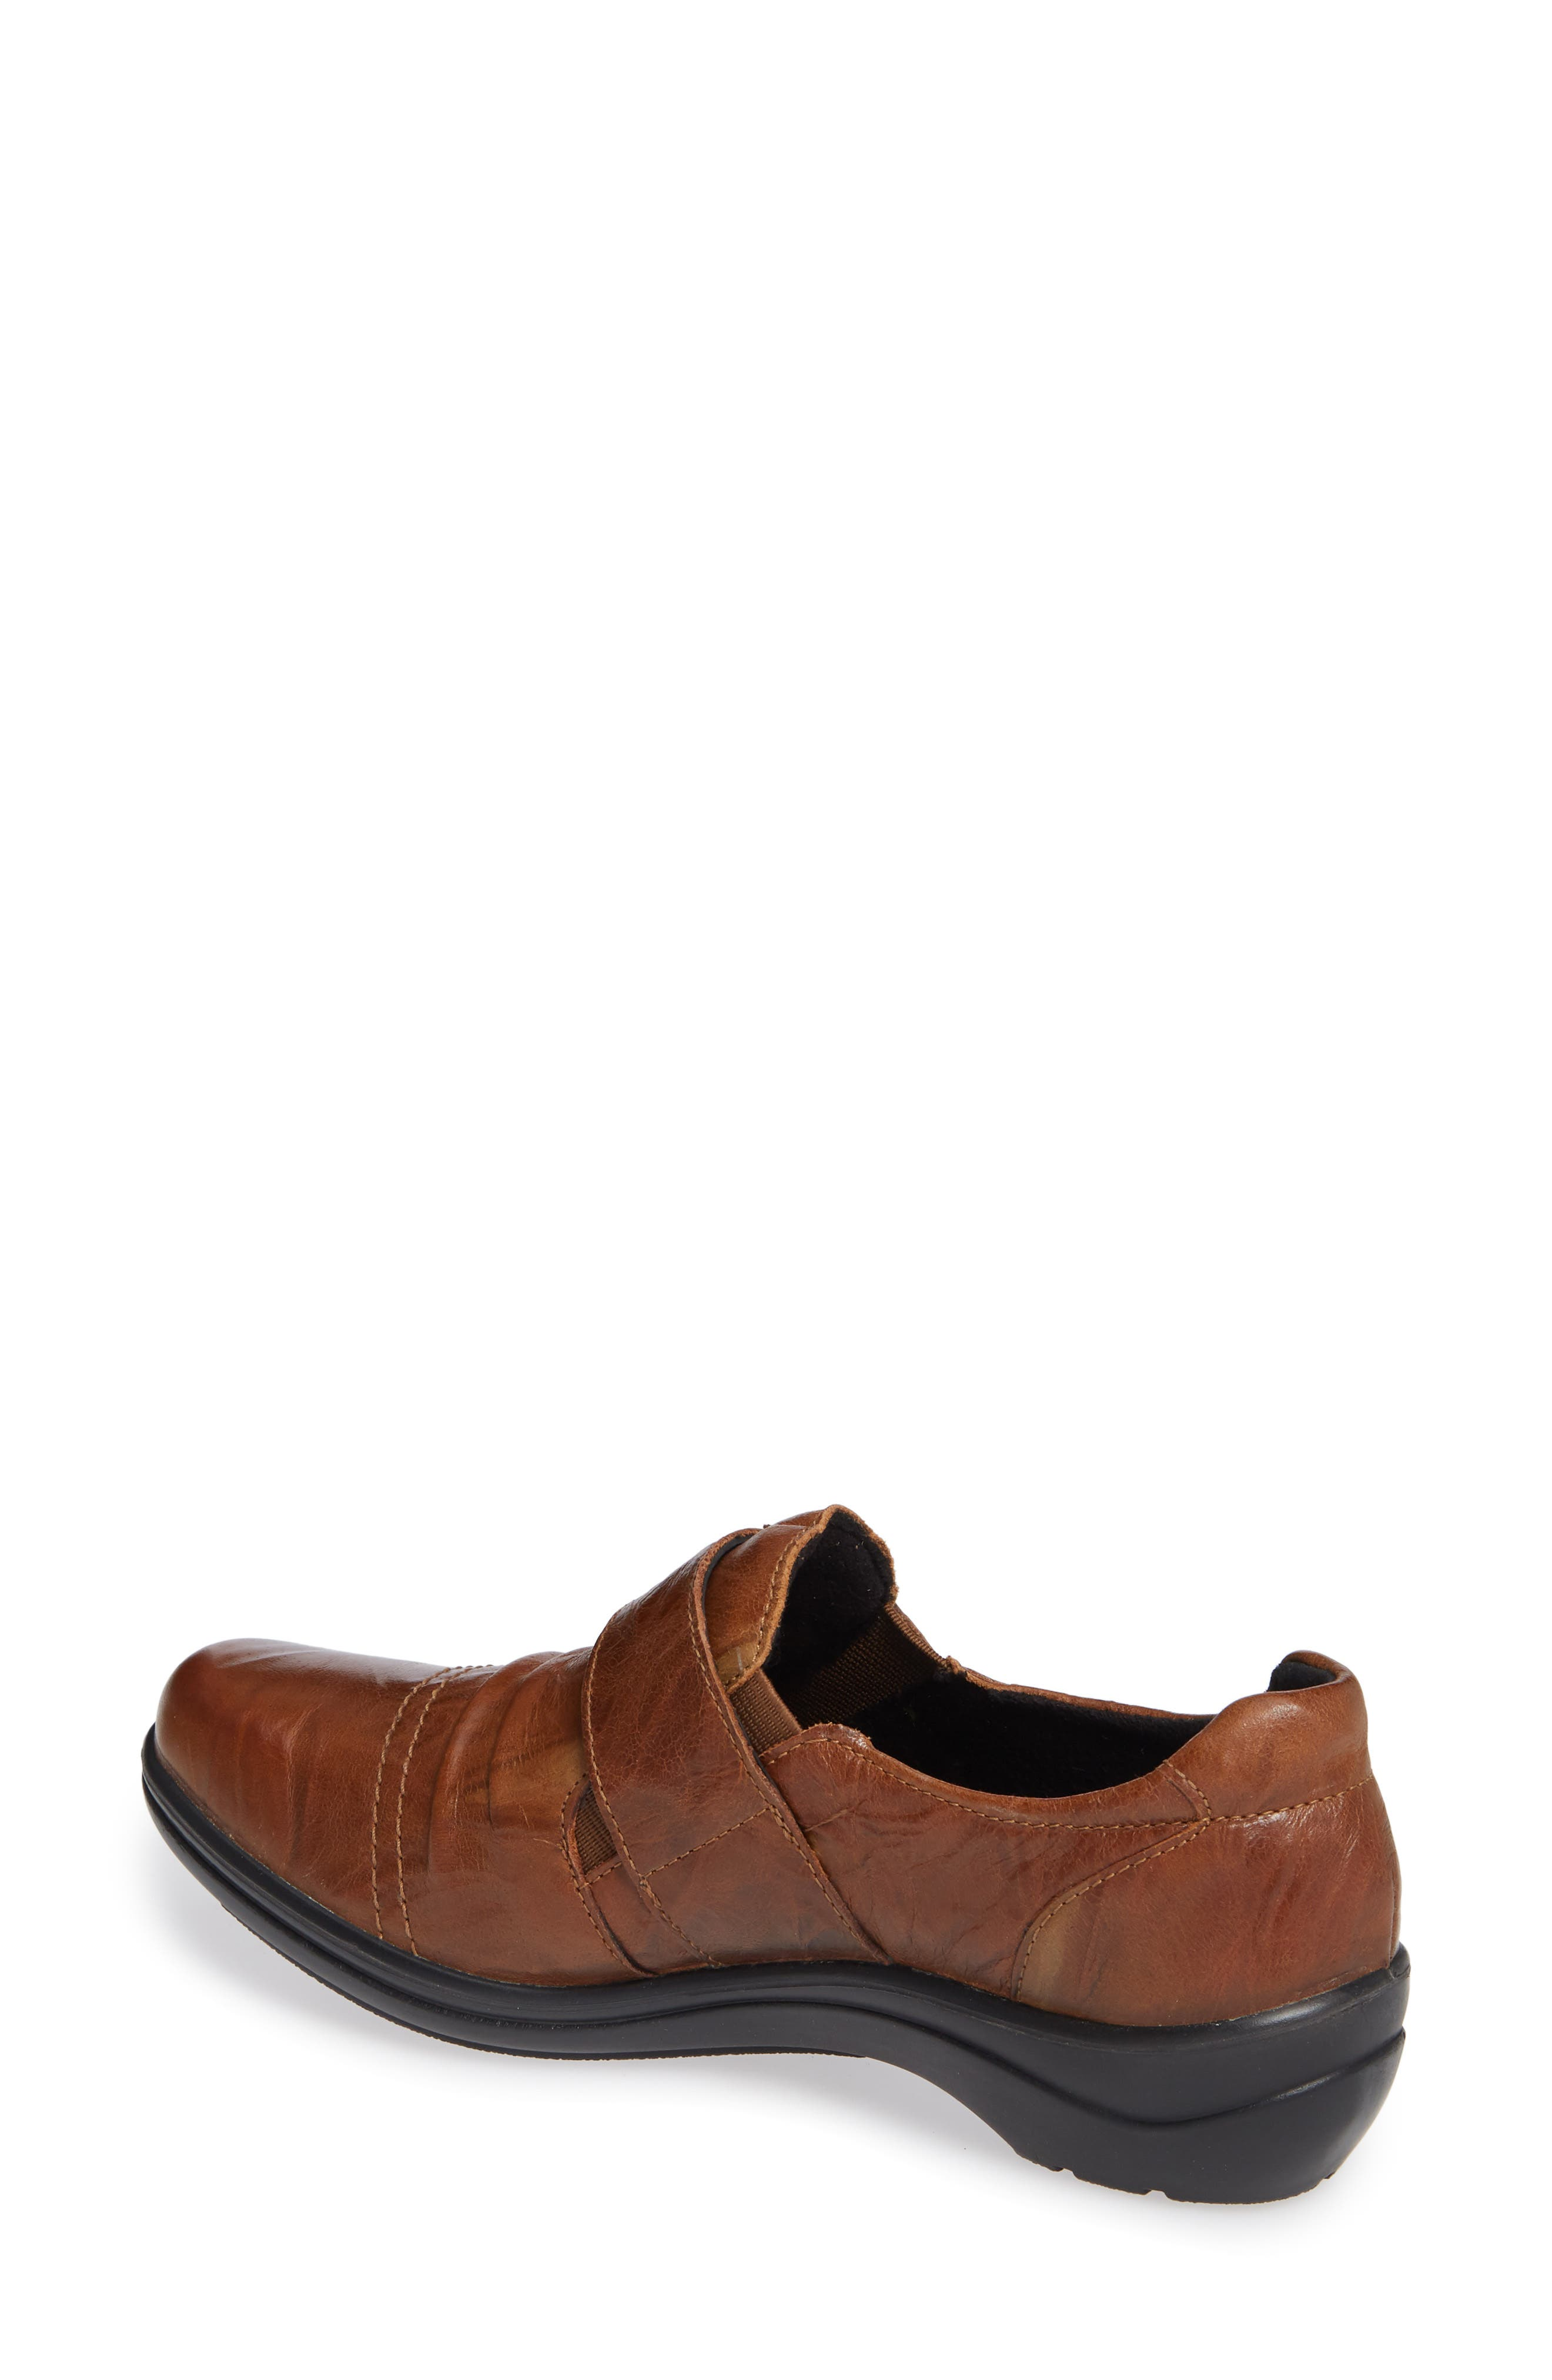 Cassie 43 Loafer,                             Alternate thumbnail 2, color,                             BROWN LEATHER